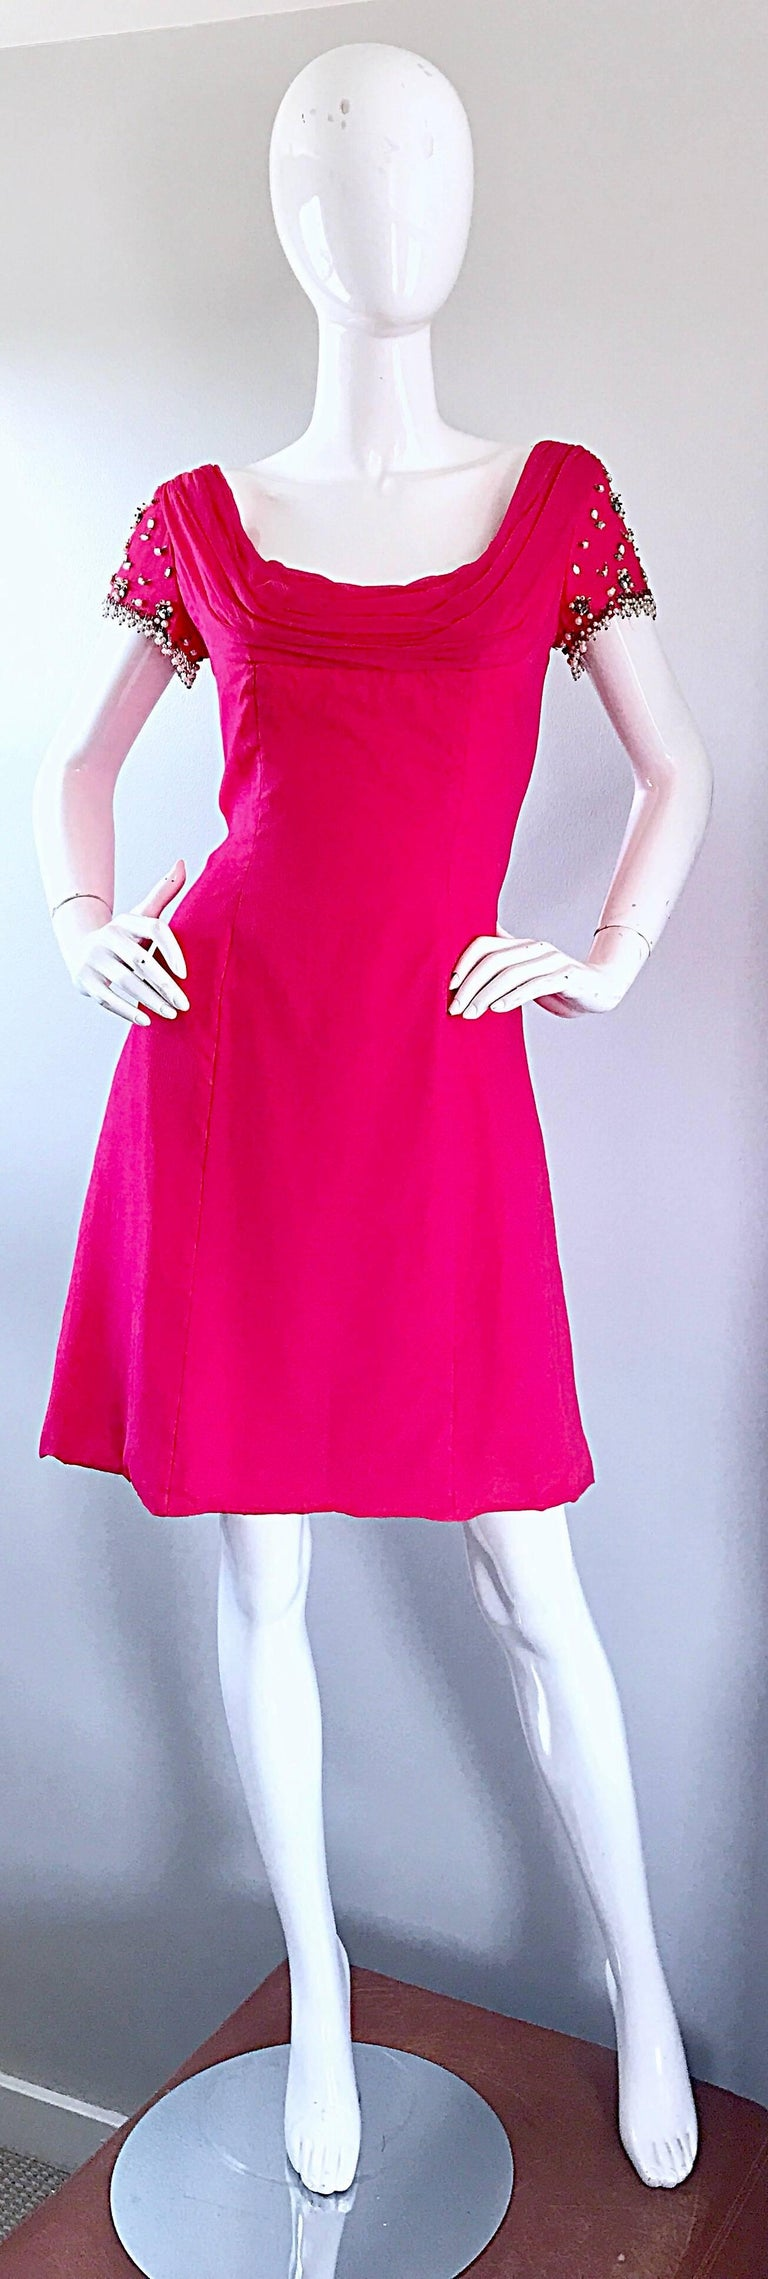 Beautiful early 1960s LILLI DIAMOND hot pink chiffon A-Line dress! Brand new with original store tags! Features hand-sewn beads, rhinestones and pearls on each sleeve. Full metal zipper up the back with hook-and-eye closure. Fitted bodice, with a